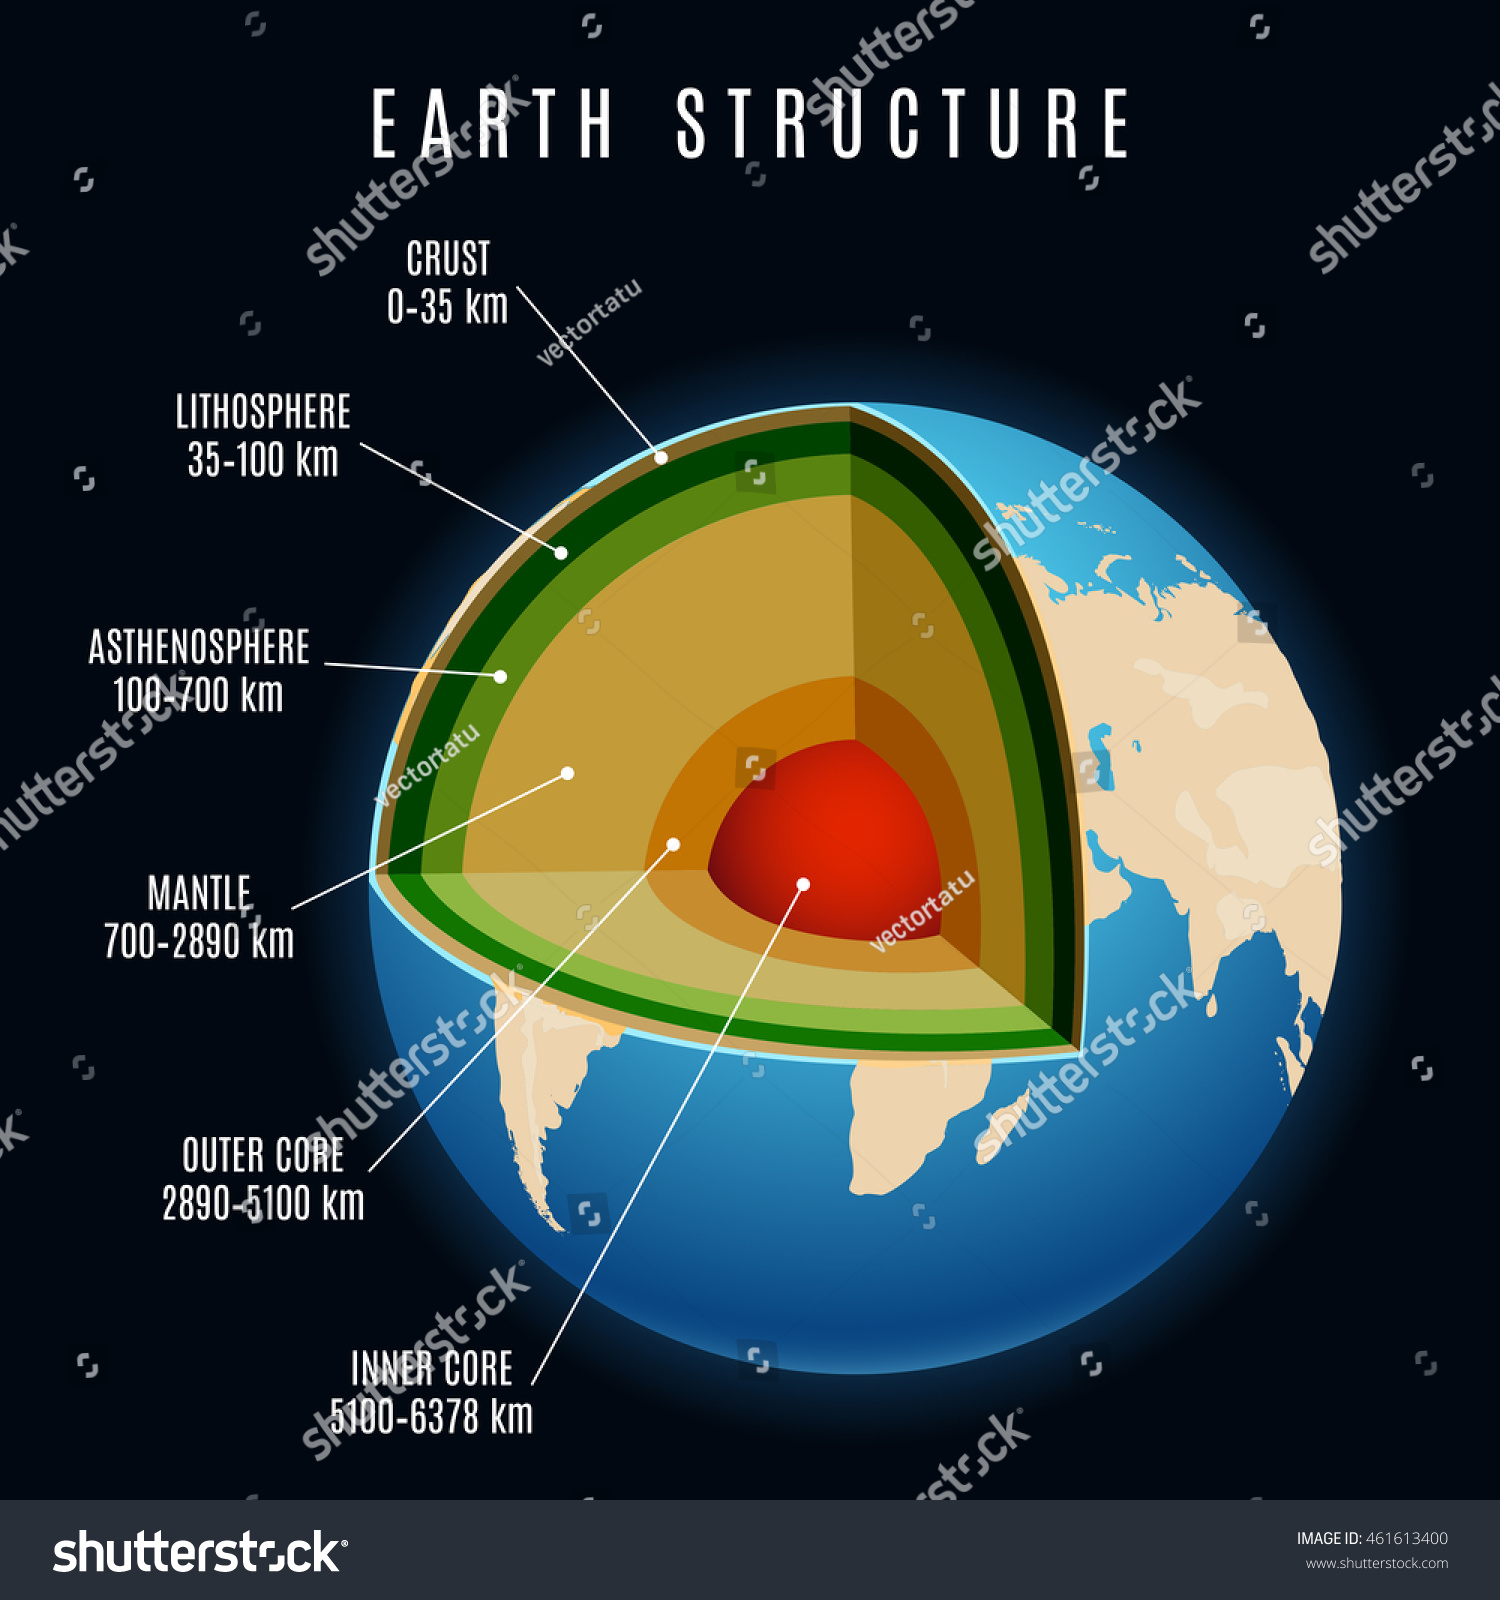 Earth Structure With Lithosphere And Continental Crust ...